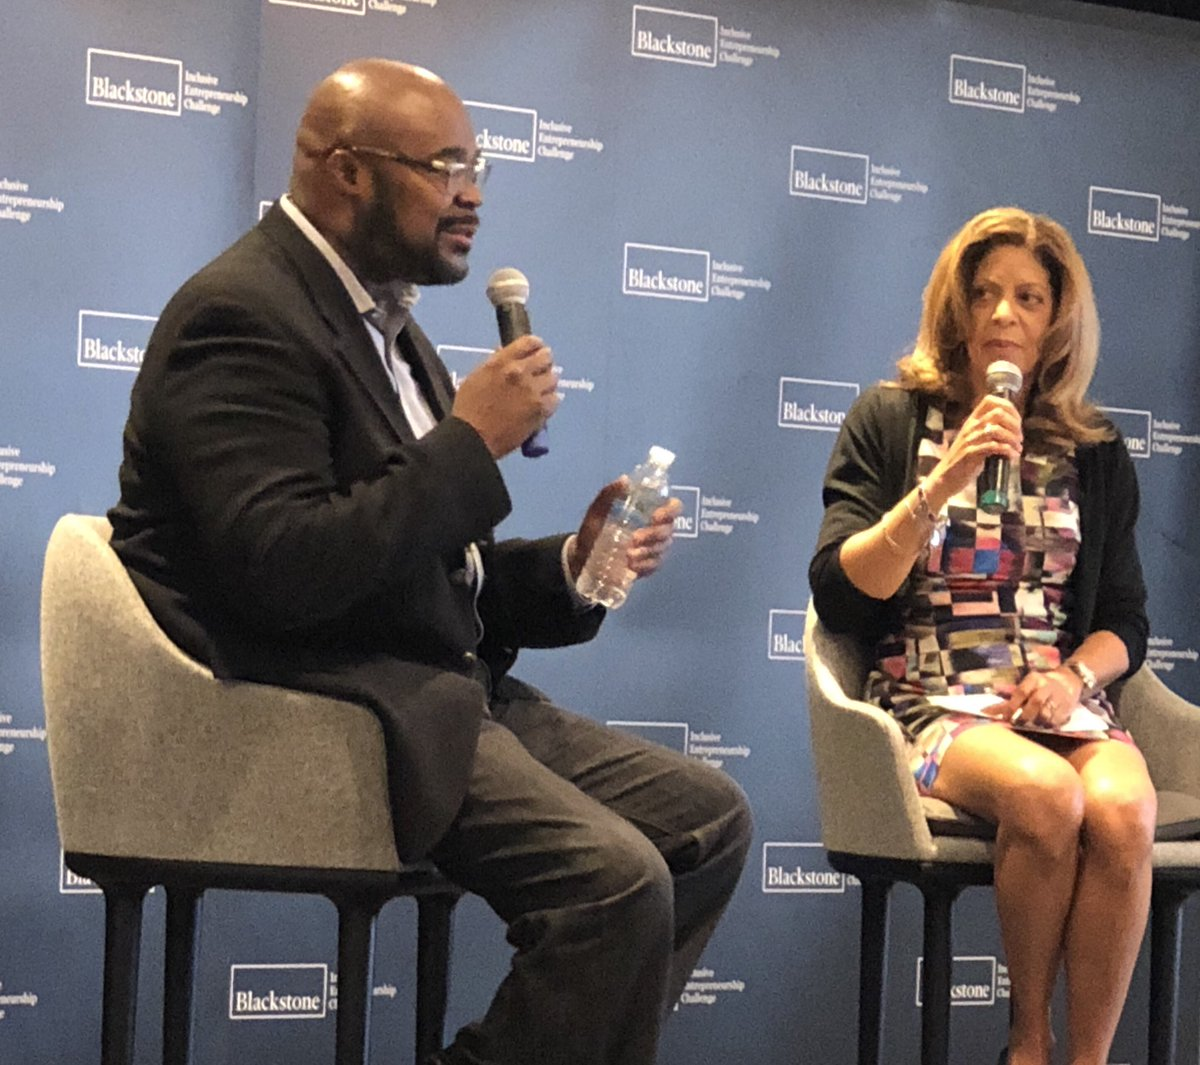 Honored to attend the 1st #IESummit &amp; show support for what @FutureFounders is built on: inclusive entrepreneurship. Let's amplify the ideas from today so Chicago continues to lead in supporting diversity. Thanks @BlackstoneEI @WorldBizChicago @ChicagoNEXT @JimmyOdom @AlyaAWoods<br>http://pic.twitter.com/1rHtBFR3WB